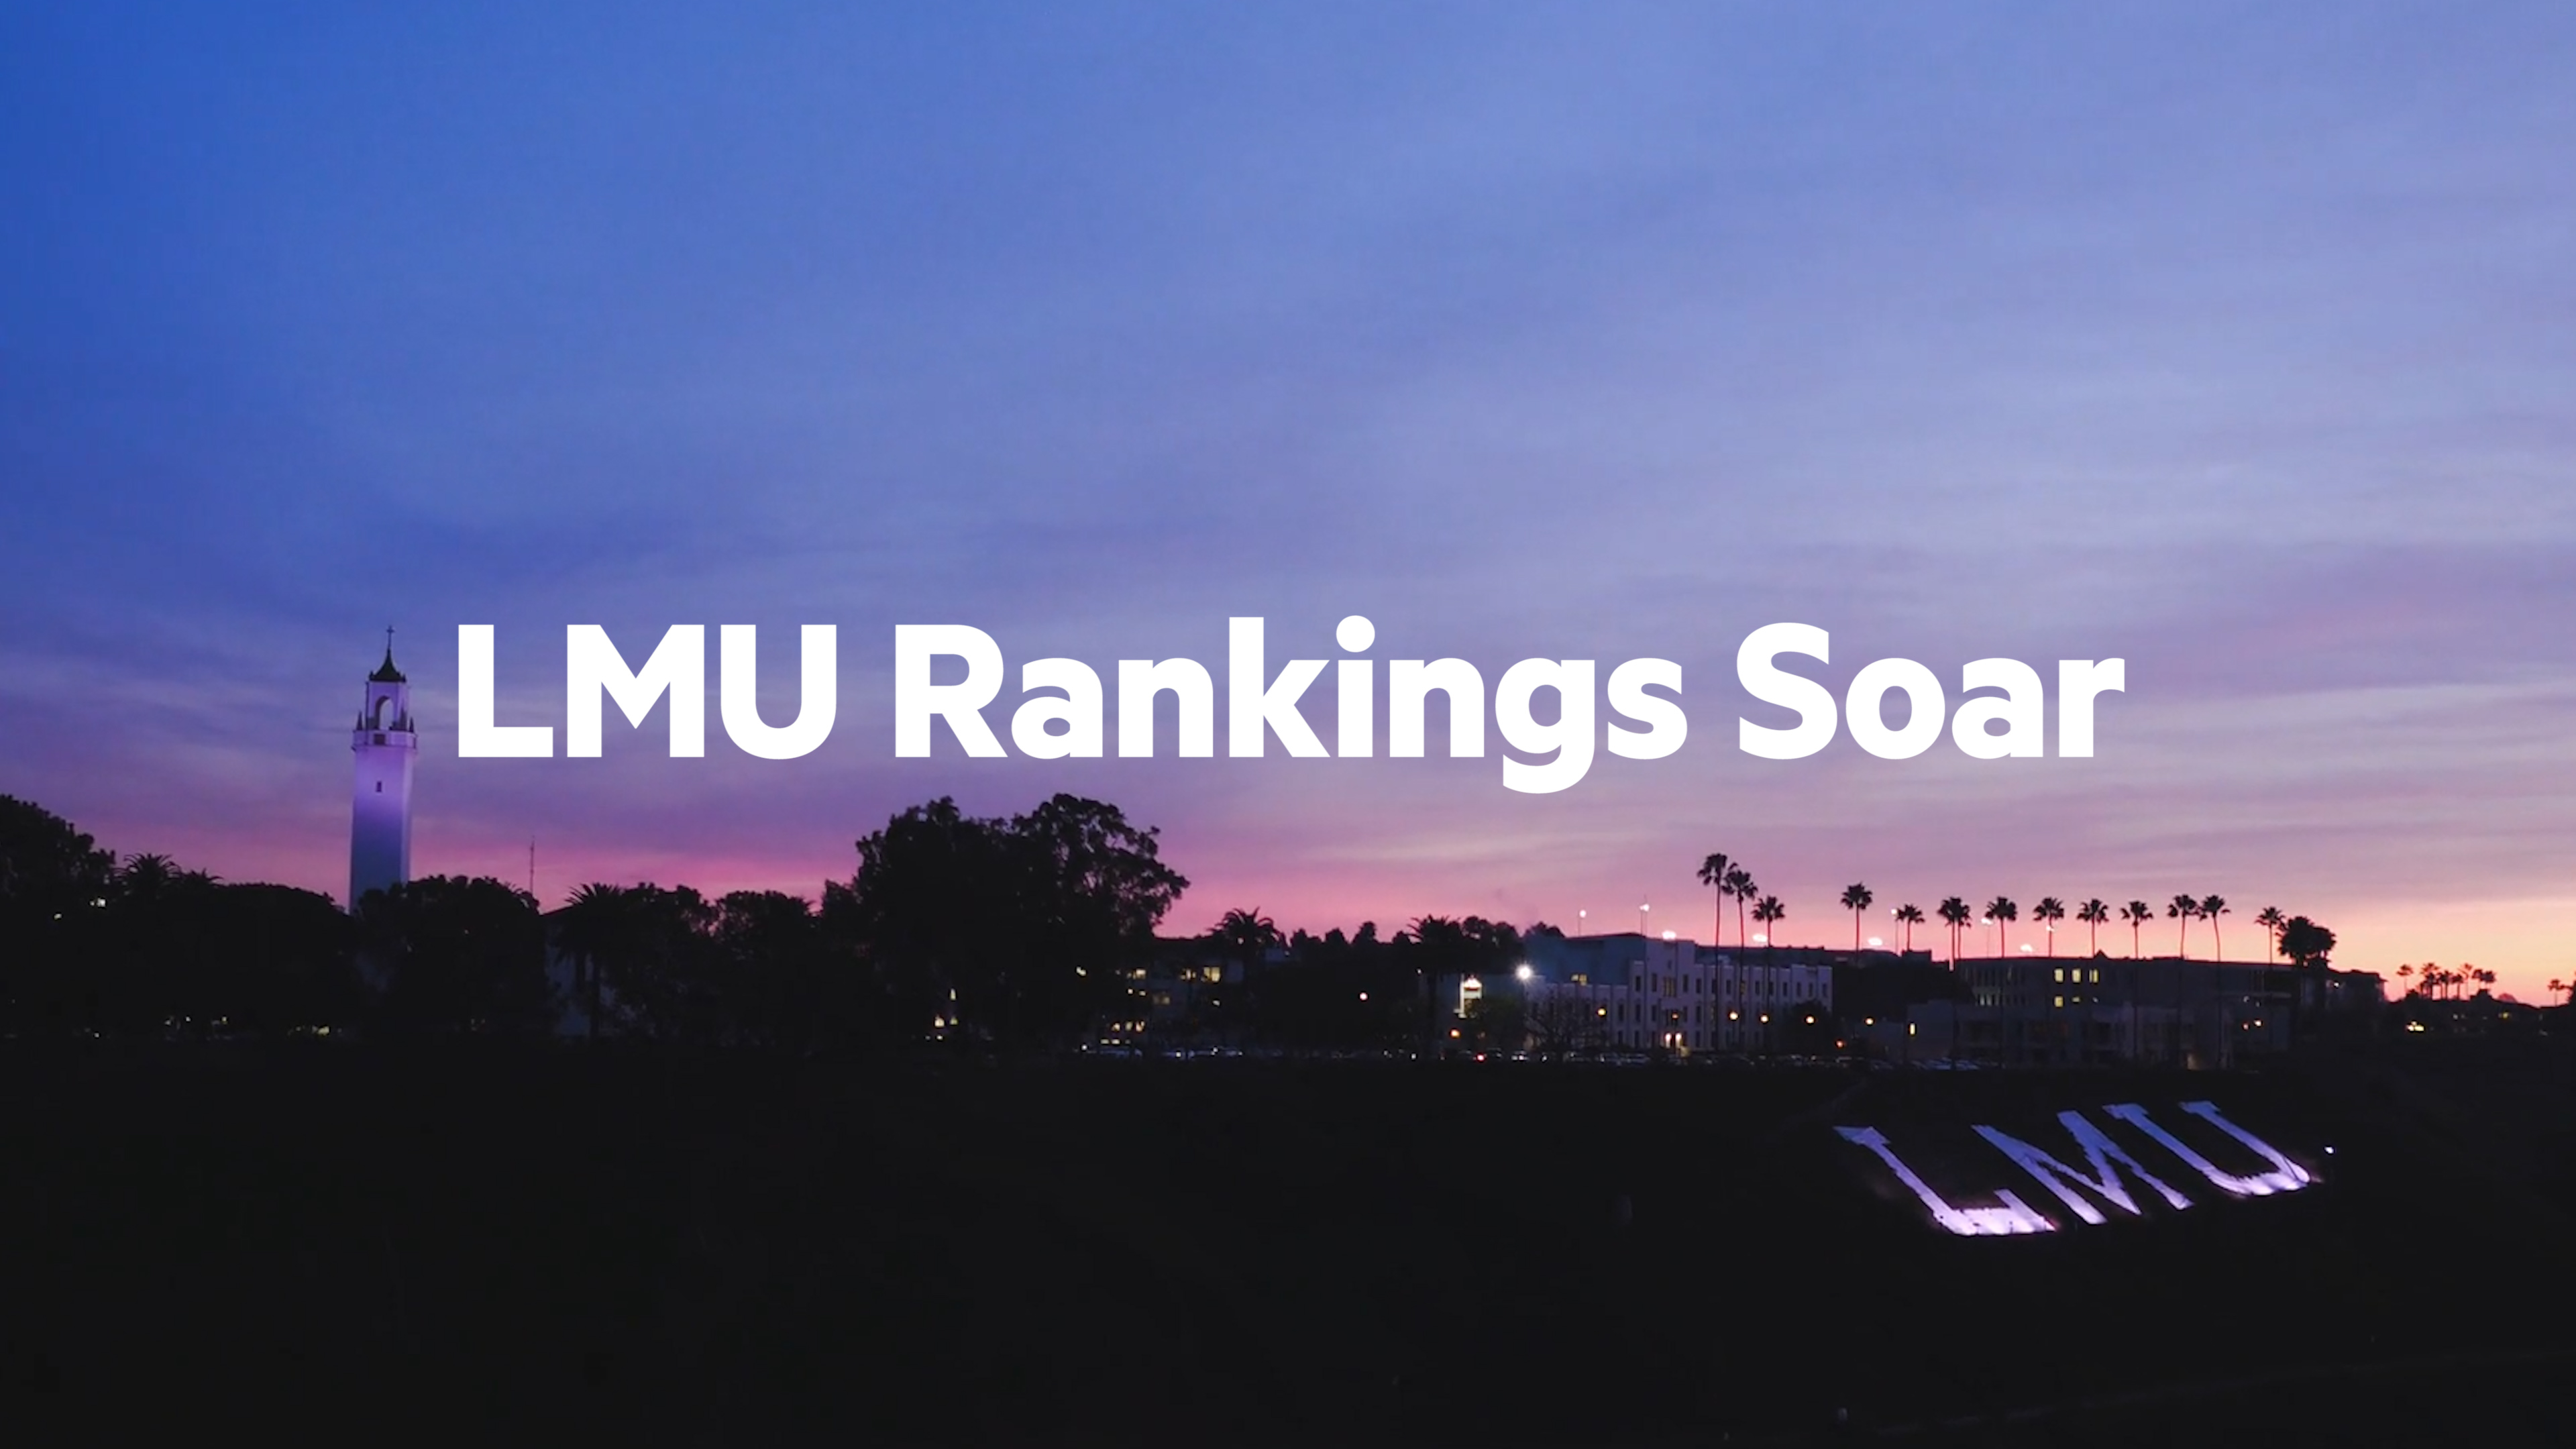 Revised 2.00 00 08 17.Still001 - LMU Rankings Soar